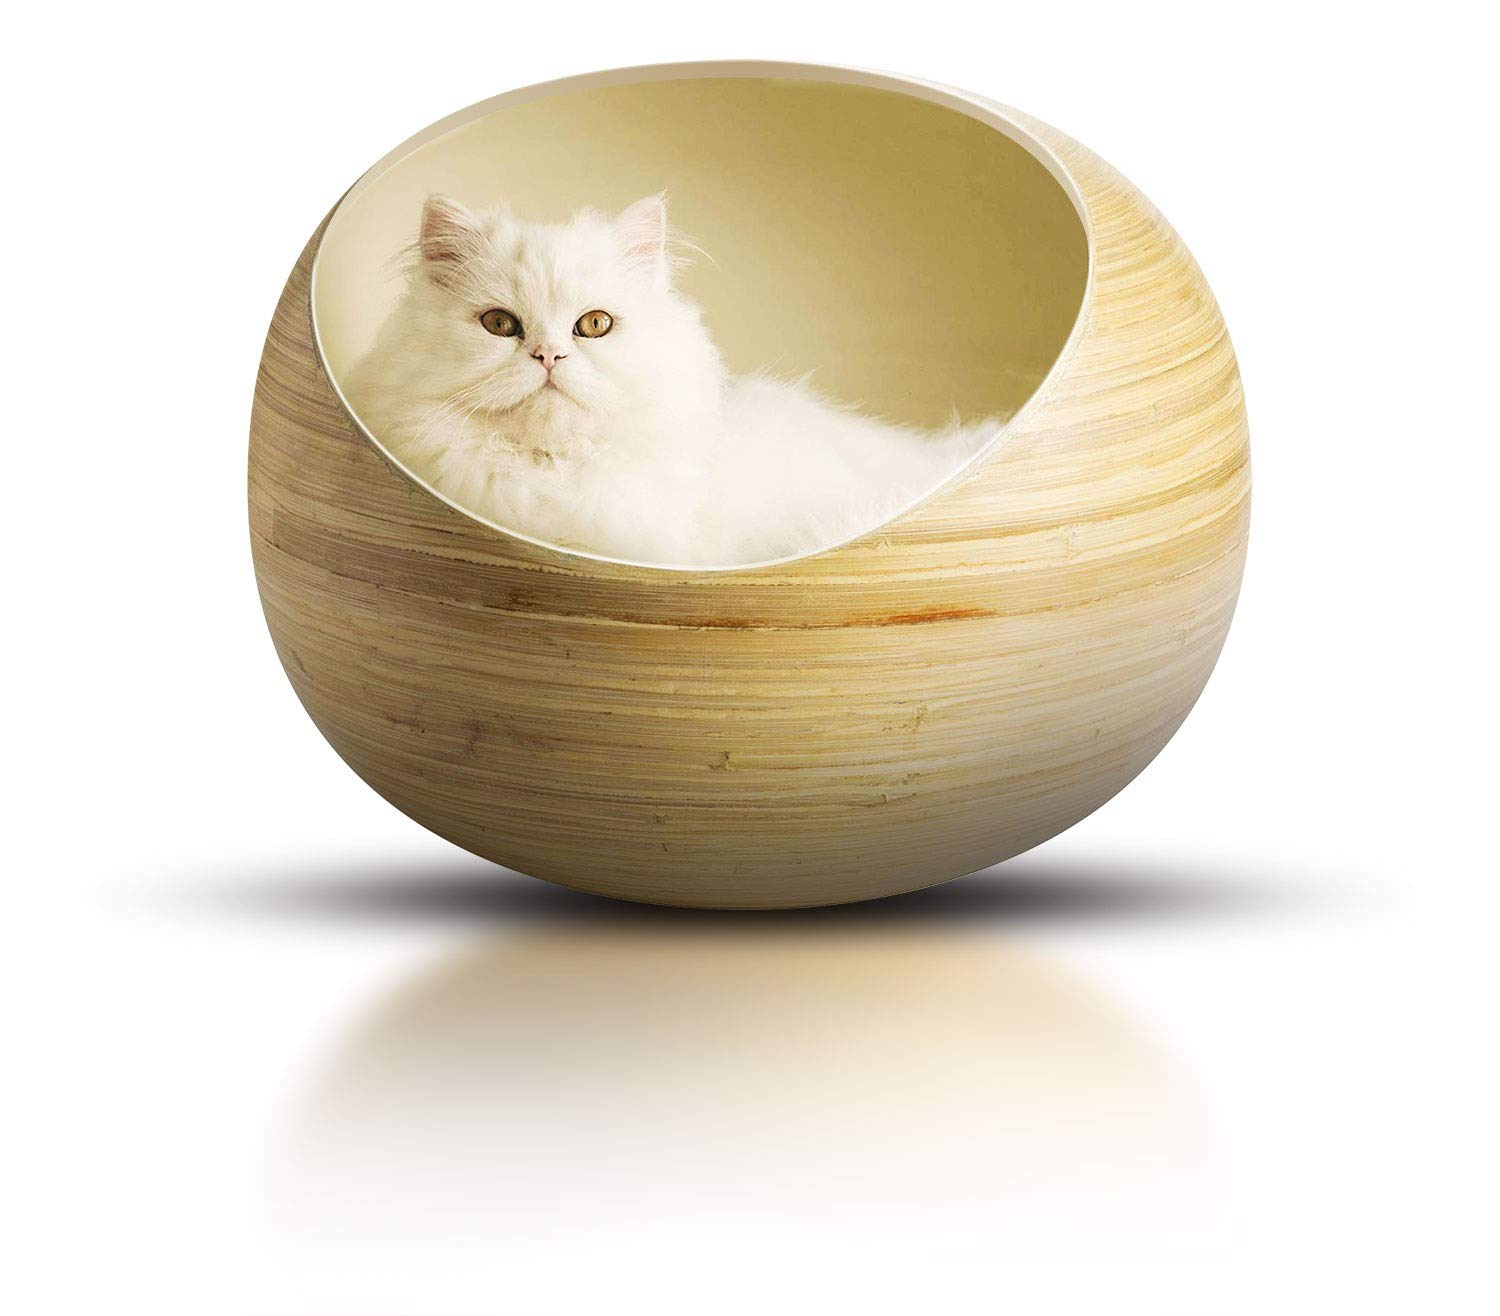 Fhasso Luxury Bamboo Wicker Cat Bed For Indoor Cats Eco Friendly Handmade Cat Cave Bed With Washable Velvet Cushion Calming Bed For Small Dogs